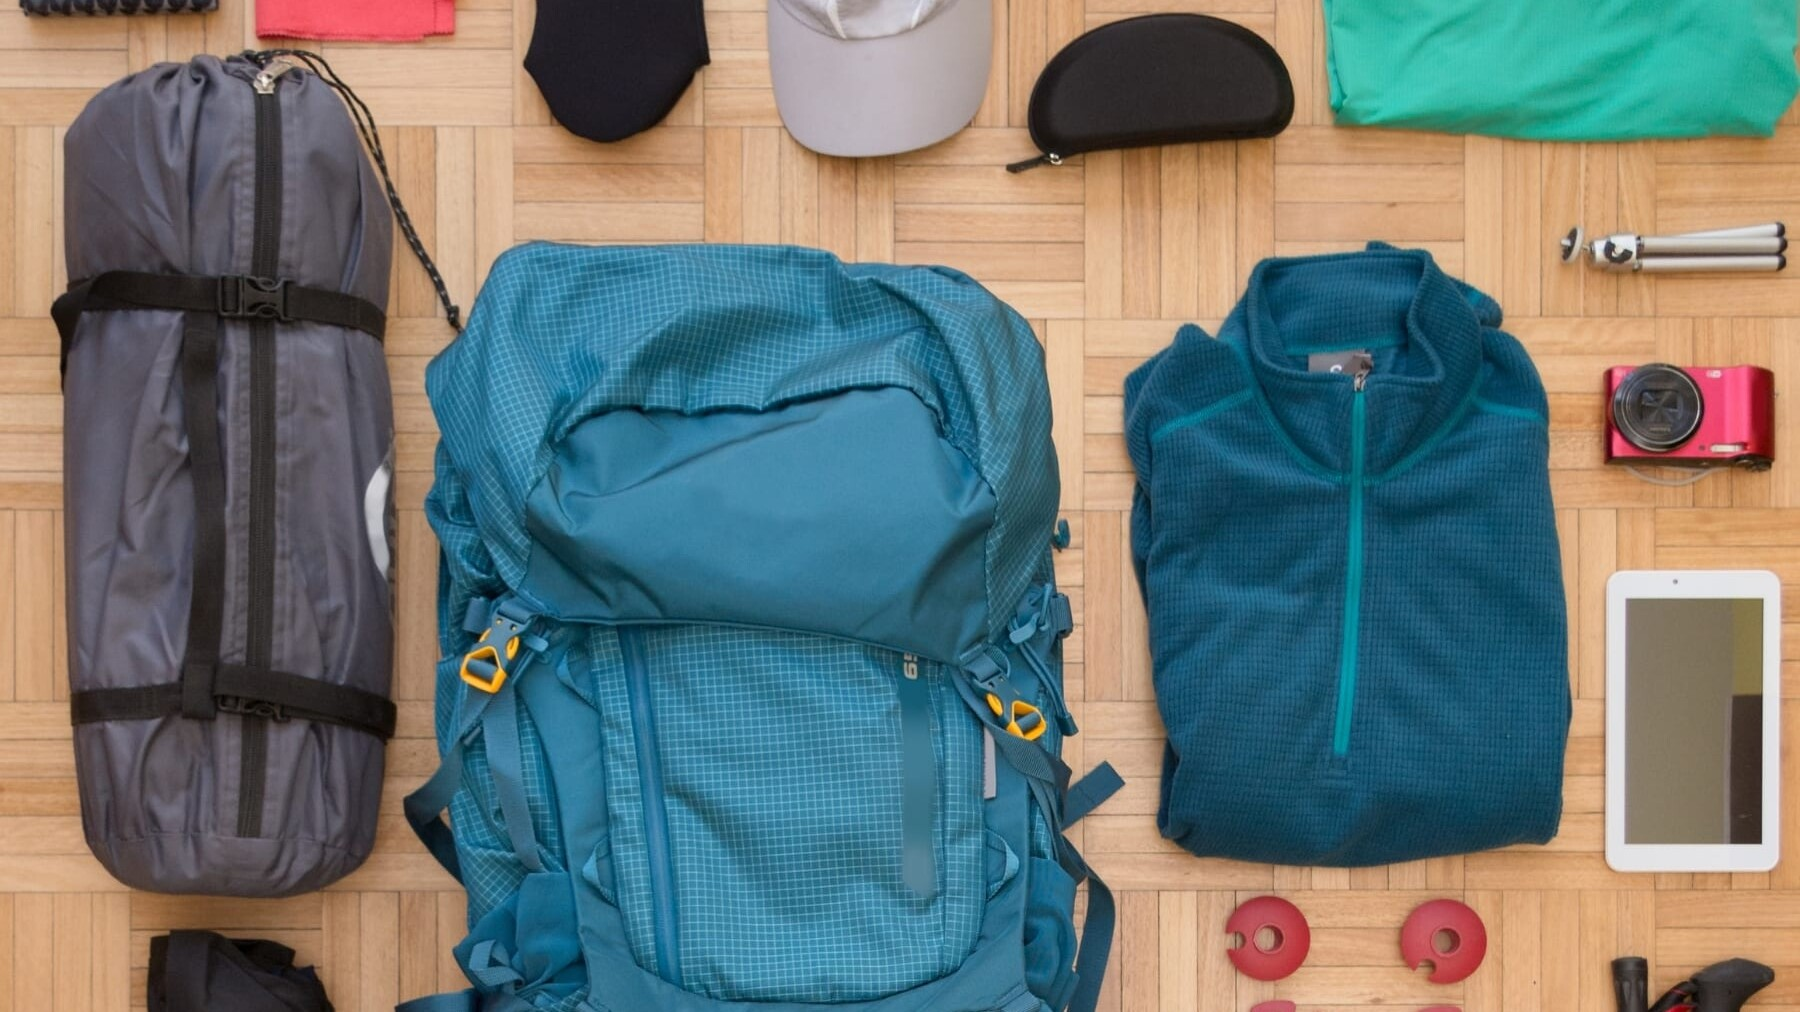 Backpacking gear laid out on the floor.